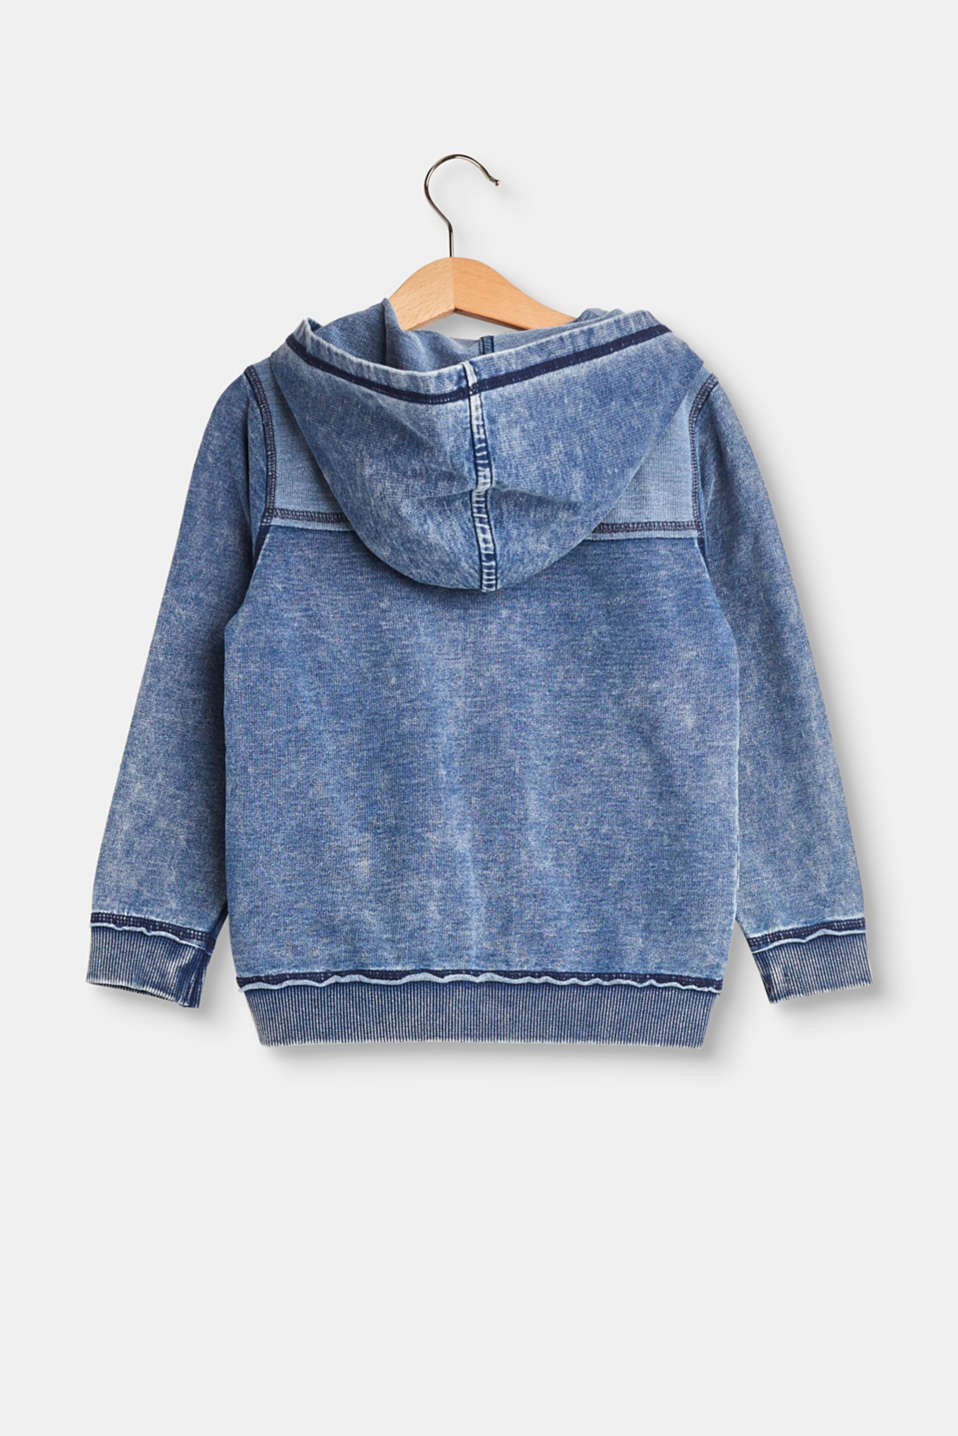 Lightweight denim-look sweatshirt cardigan